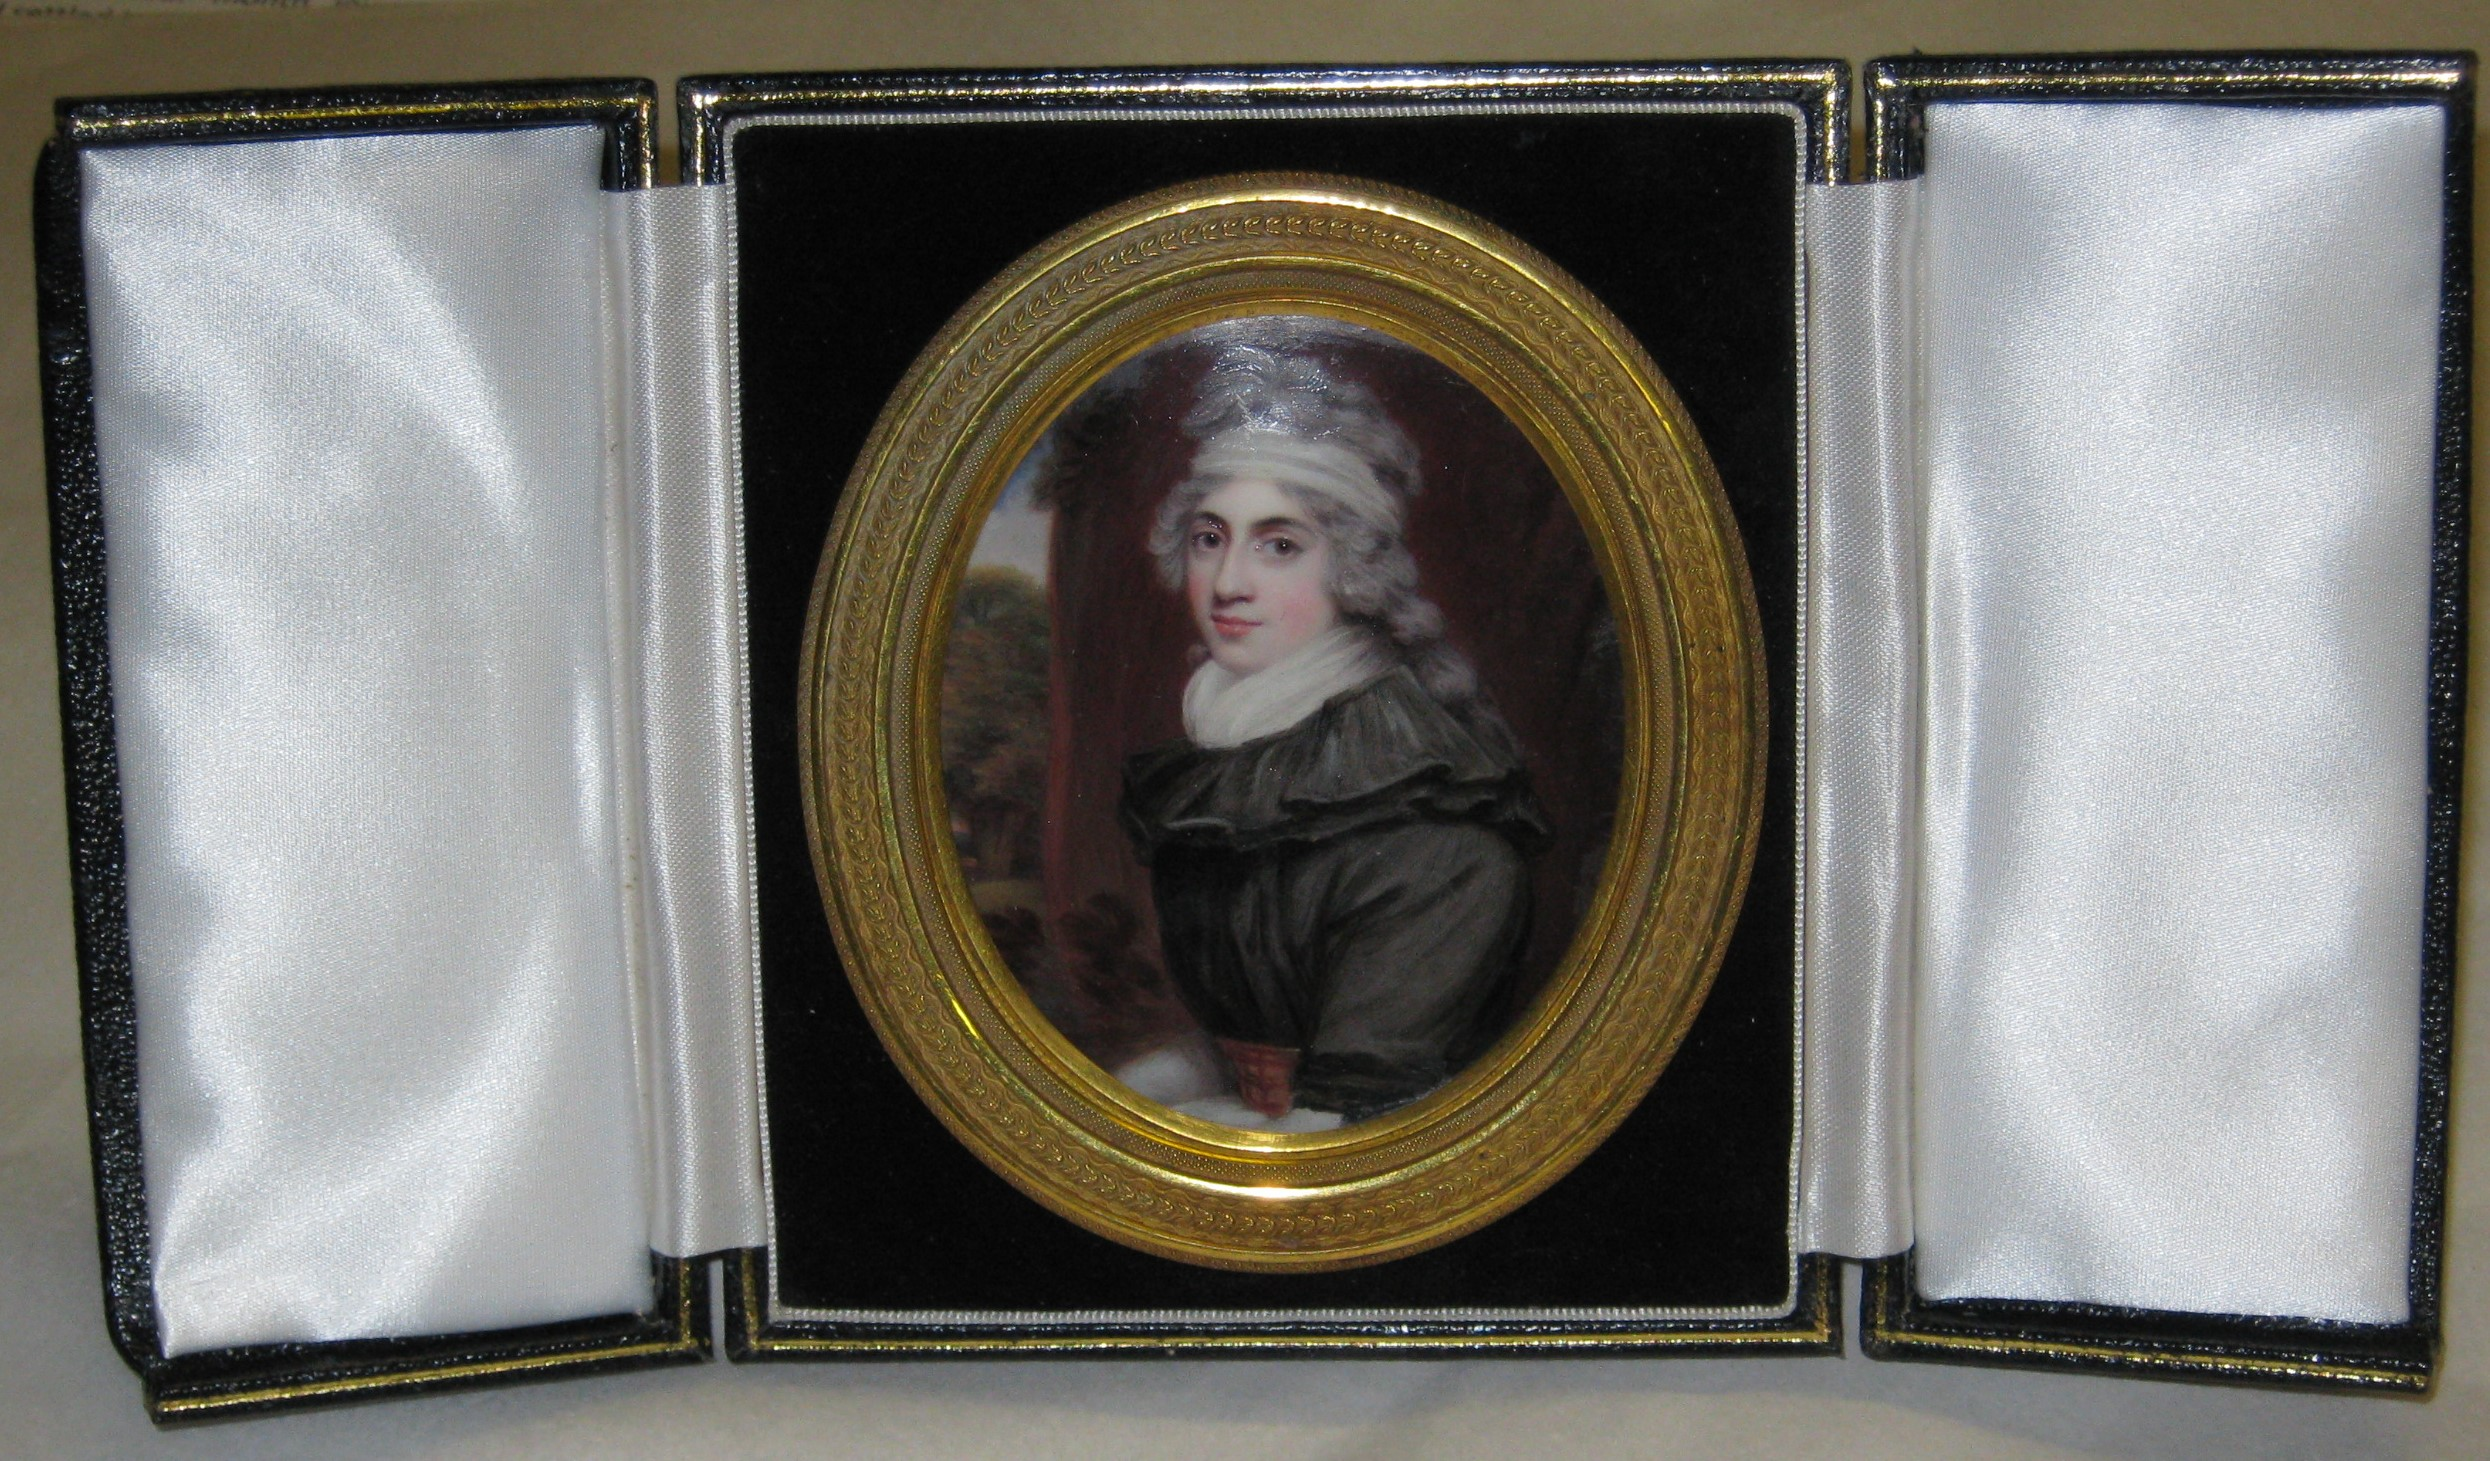 Miniature of Mary Bunn, painted in 1794 by Truro born Henry Bone RA